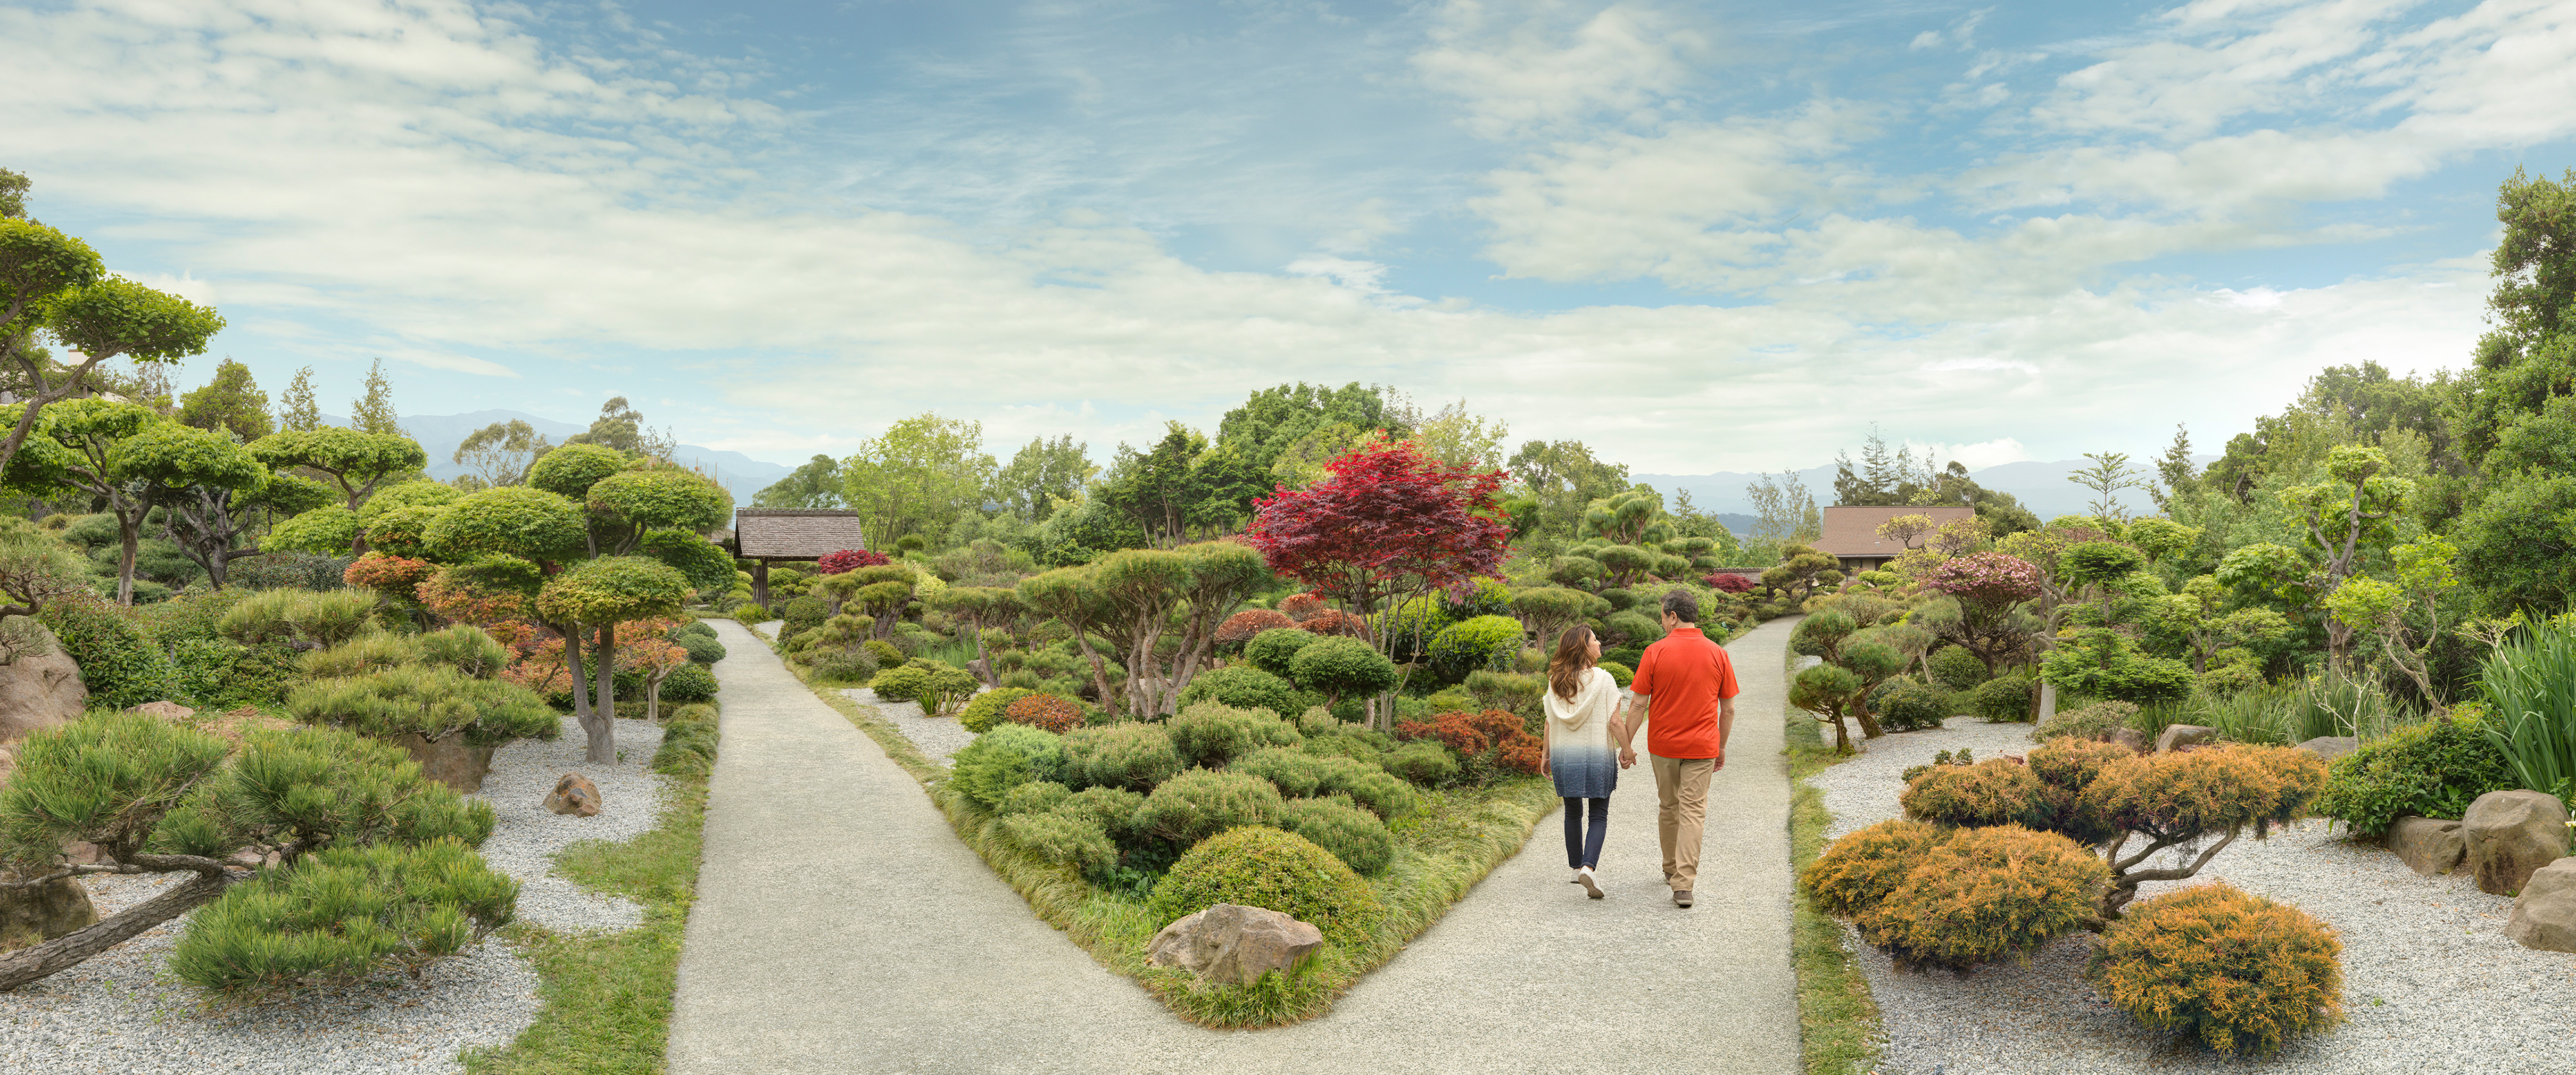 1-Bayer-Japanese-Garden_LAYERS-28-hispanic-couple-low-res